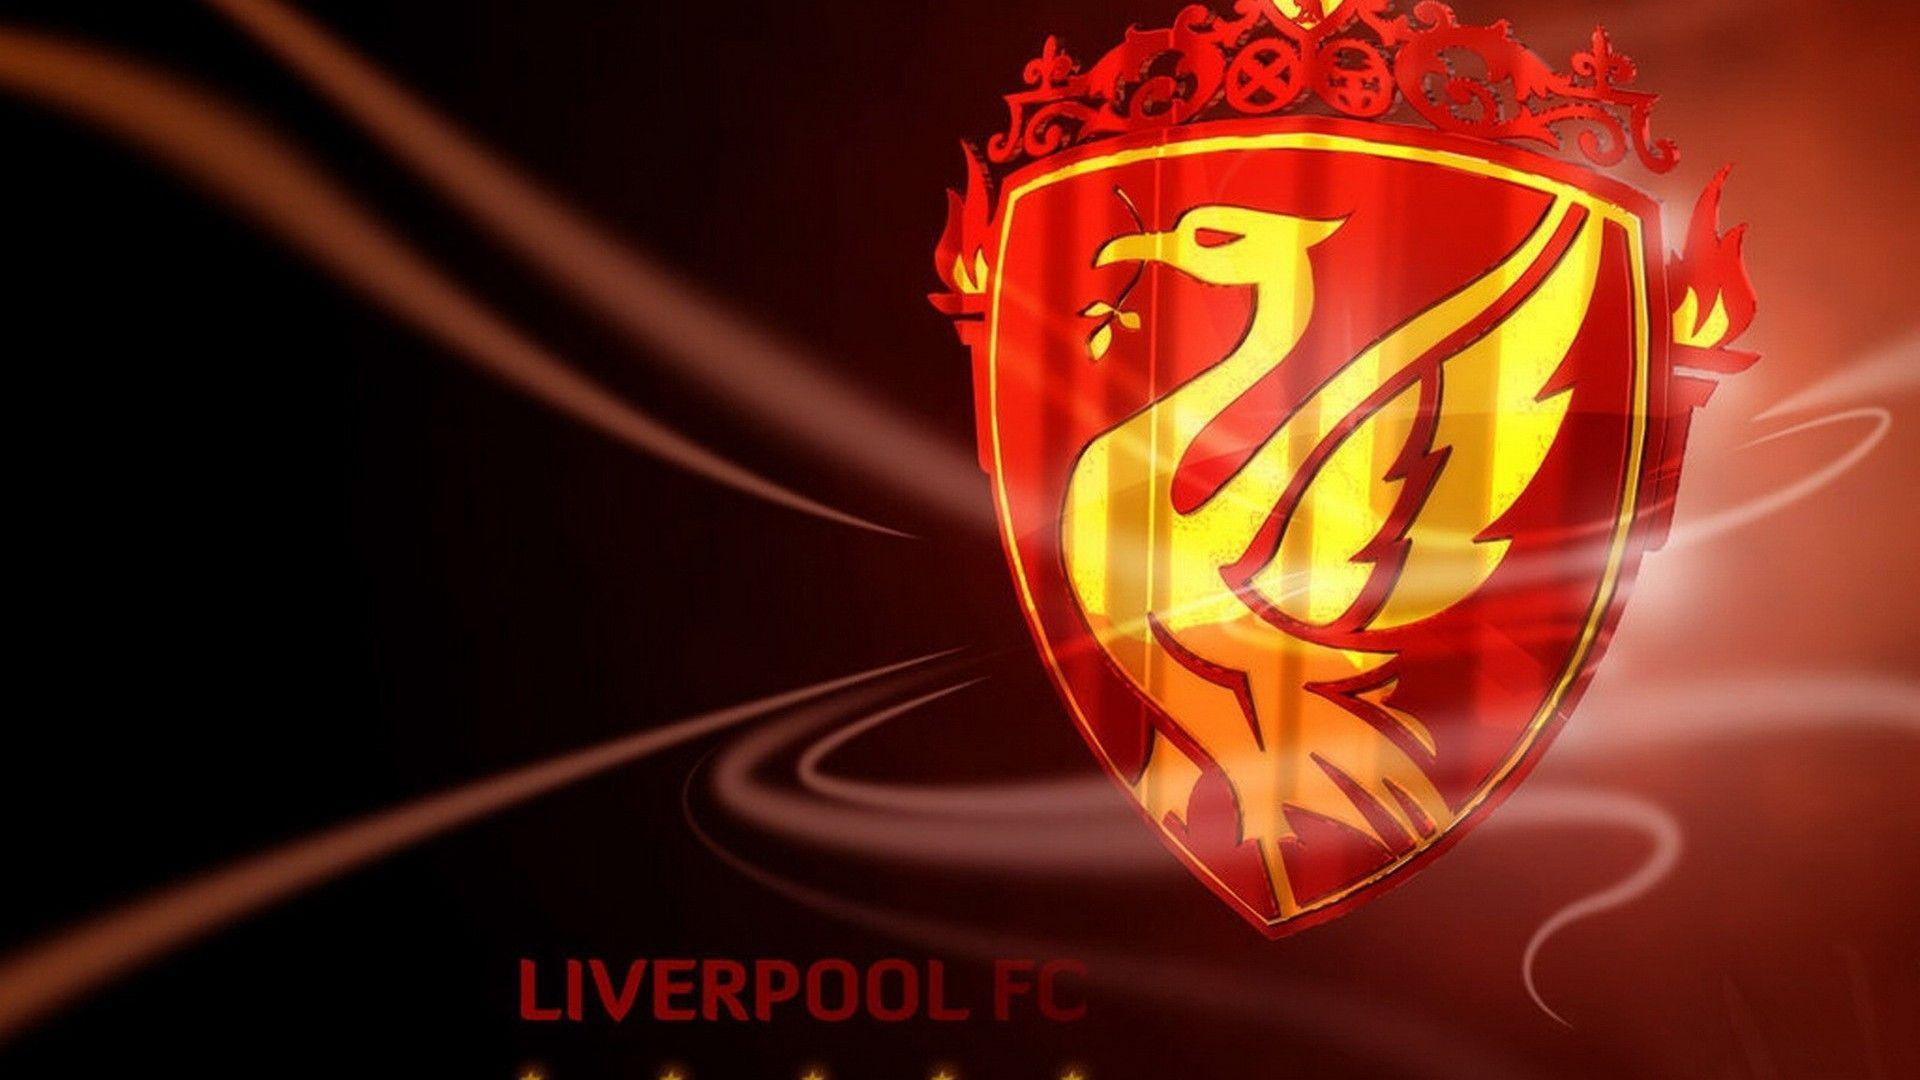 Wallpapers Logo Liverpool 2015 Wallpaper Cave